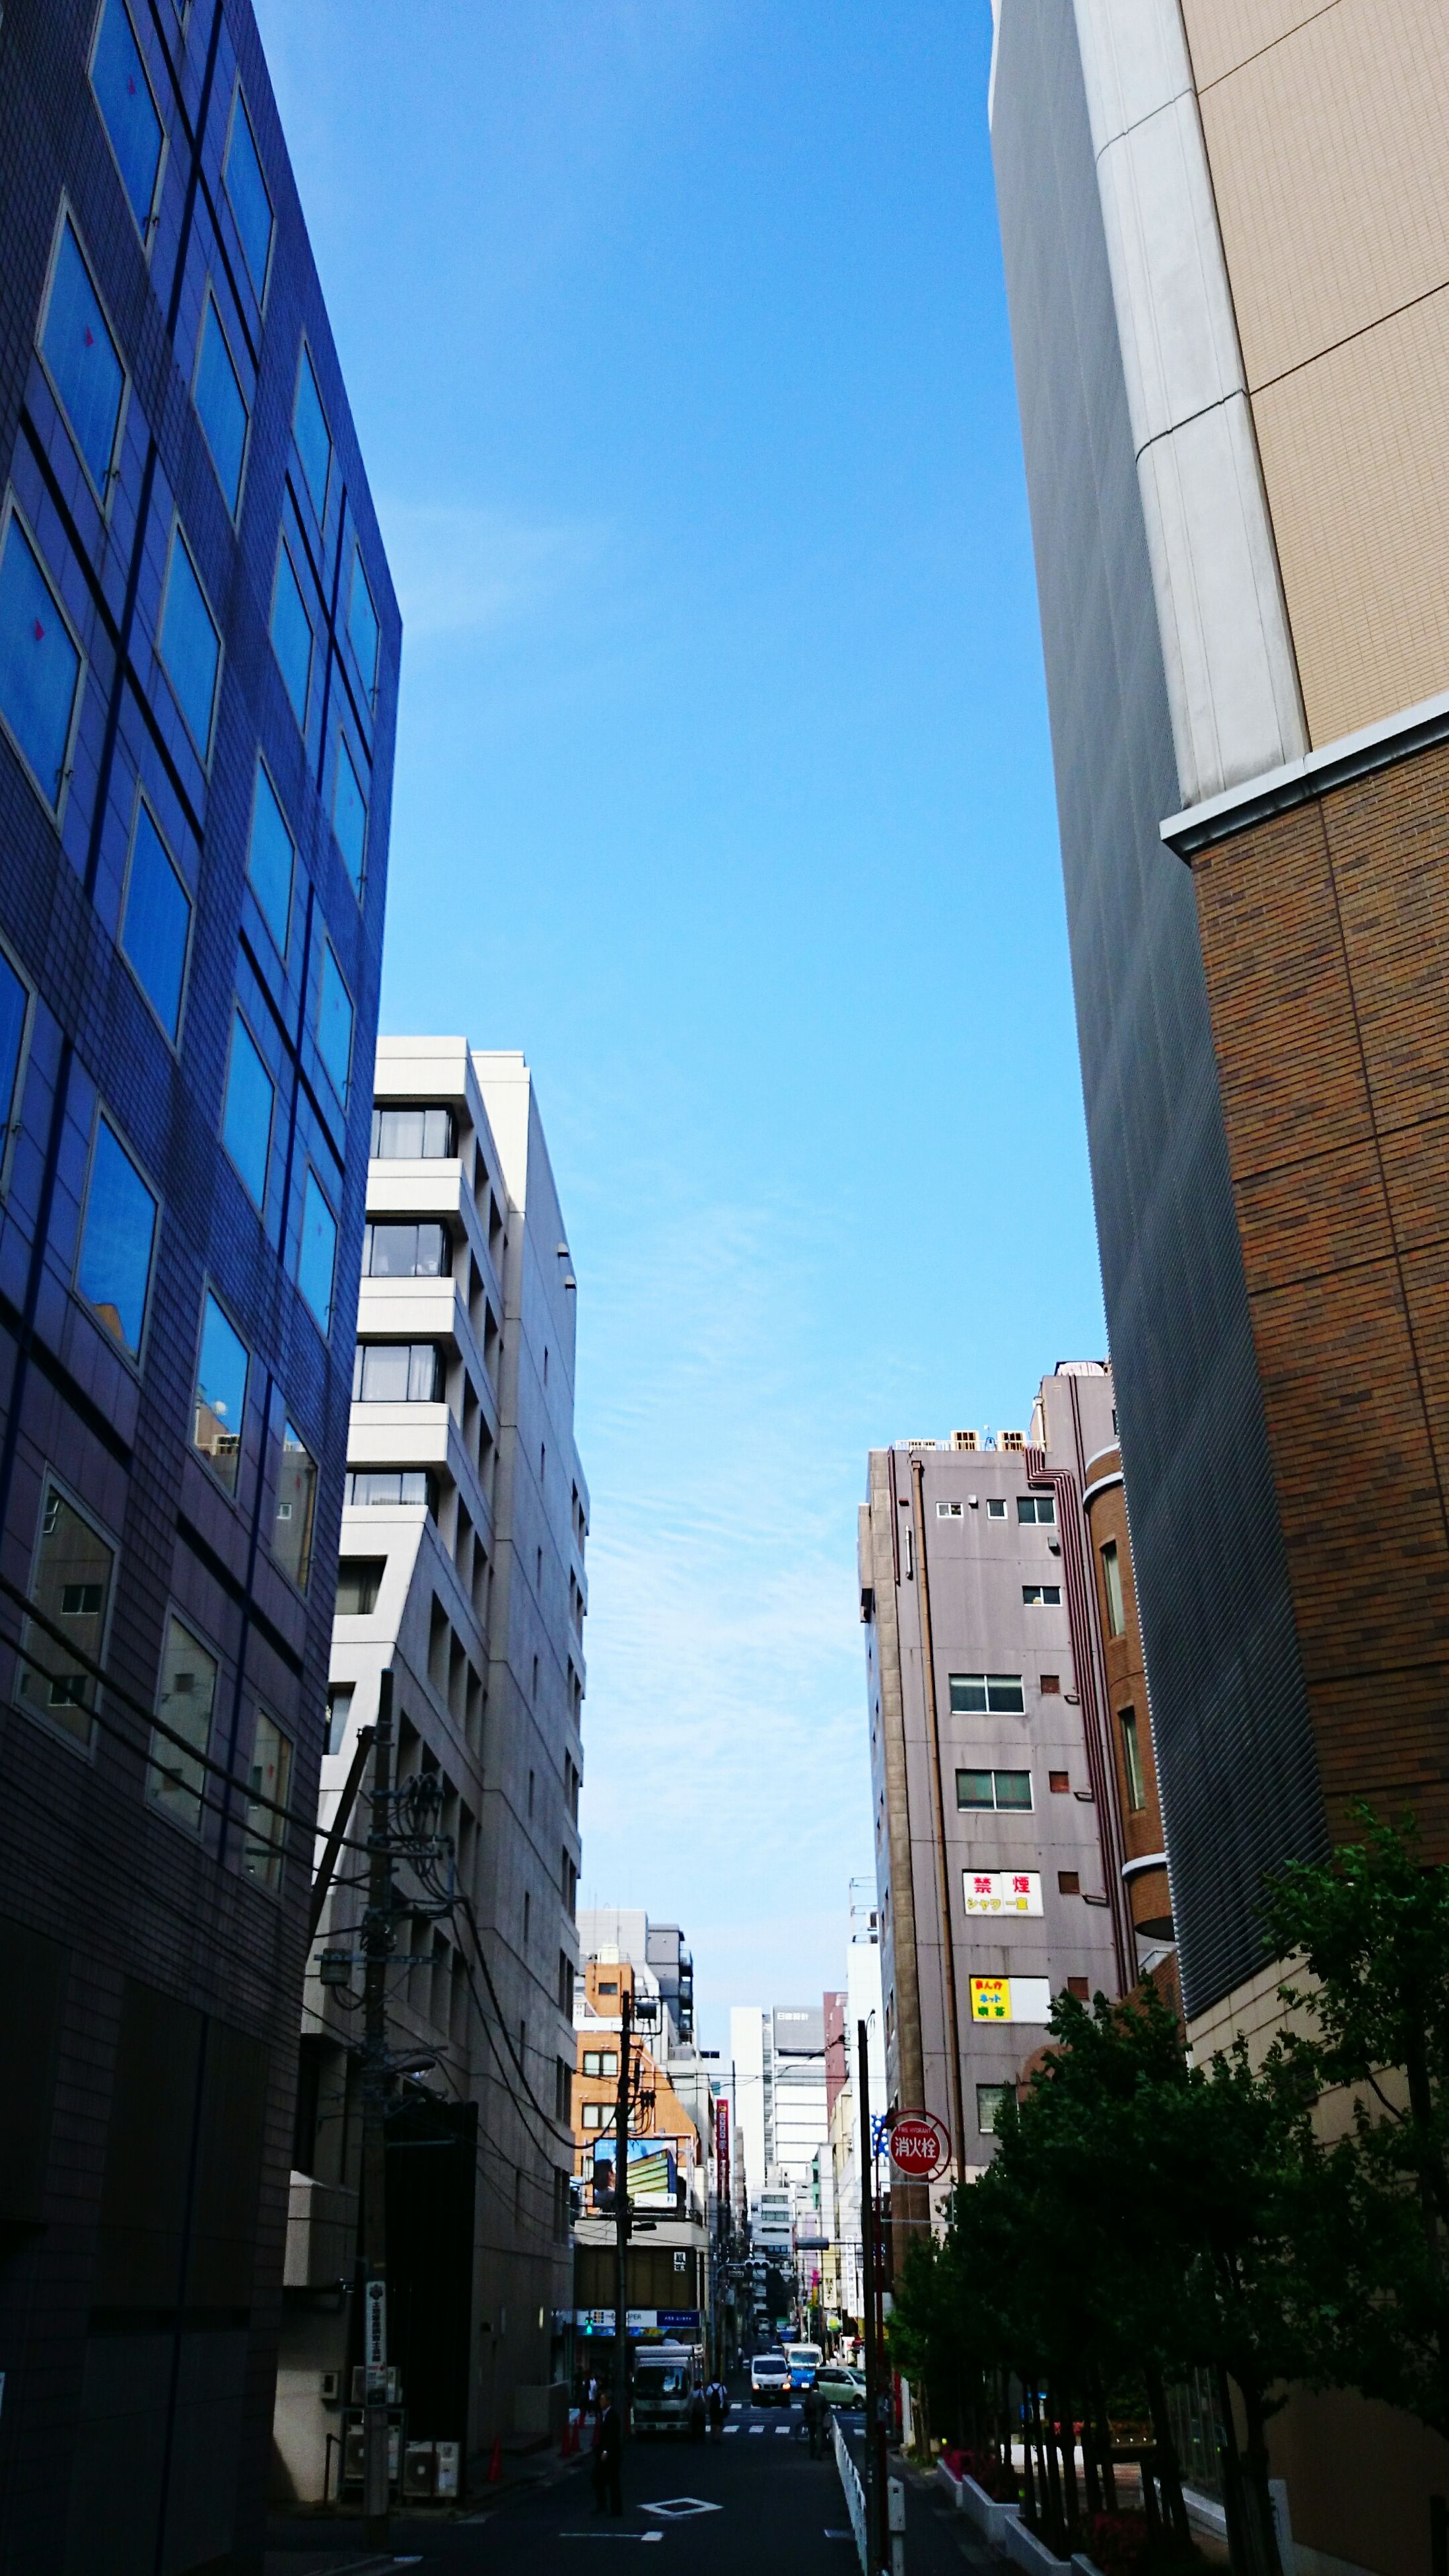 building exterior, architecture, built structure, city, modern, skyscraper, office building, low angle view, tall - high, building, tower, city life, clear sky, car, transportation, glass - material, street, day, sky, window